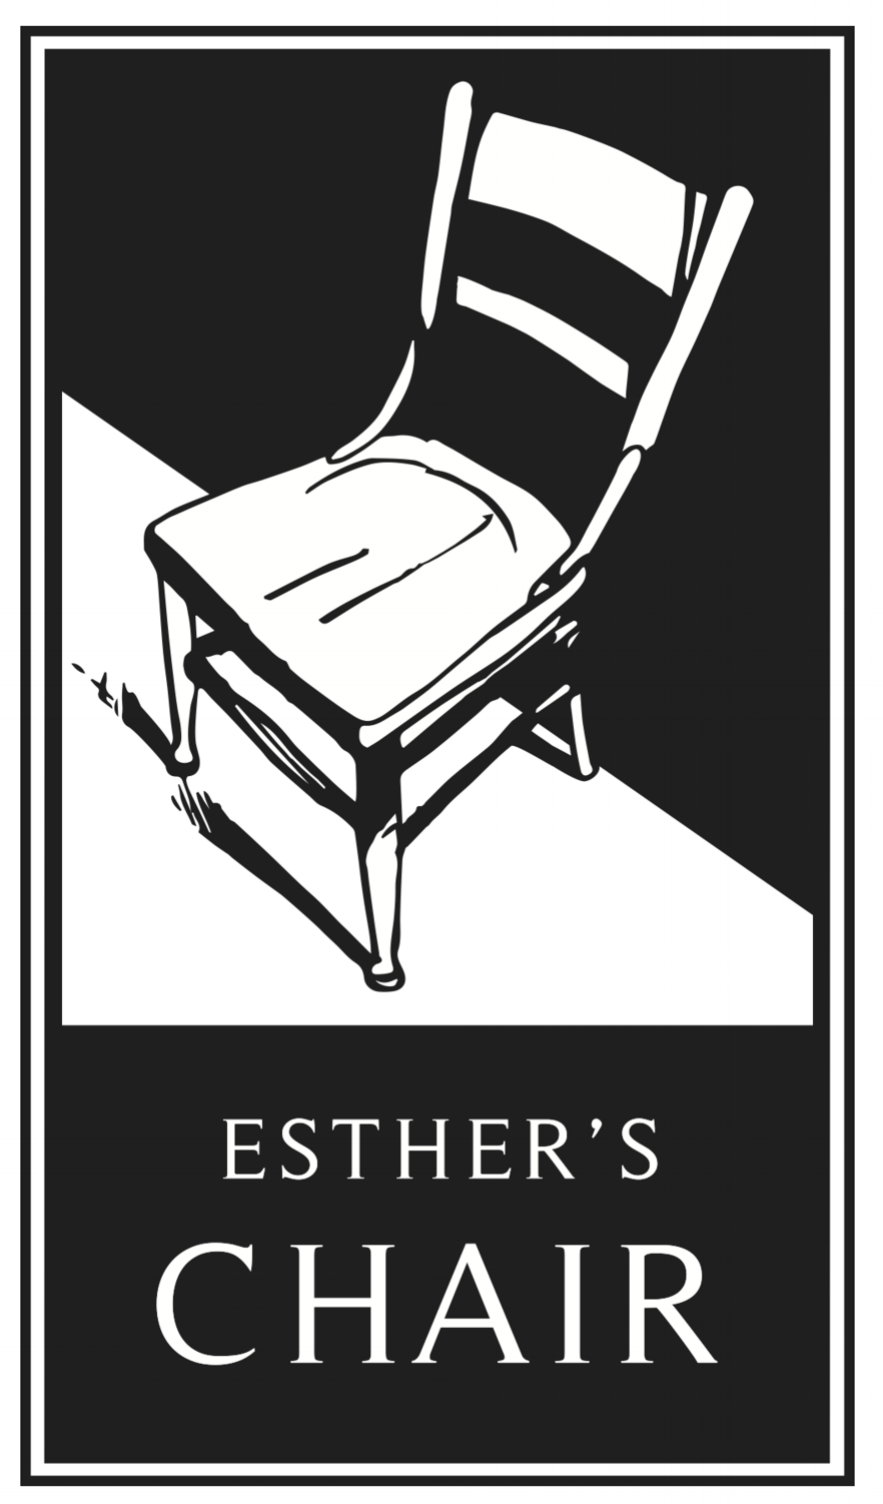 Esther's_Chair_FNL.png